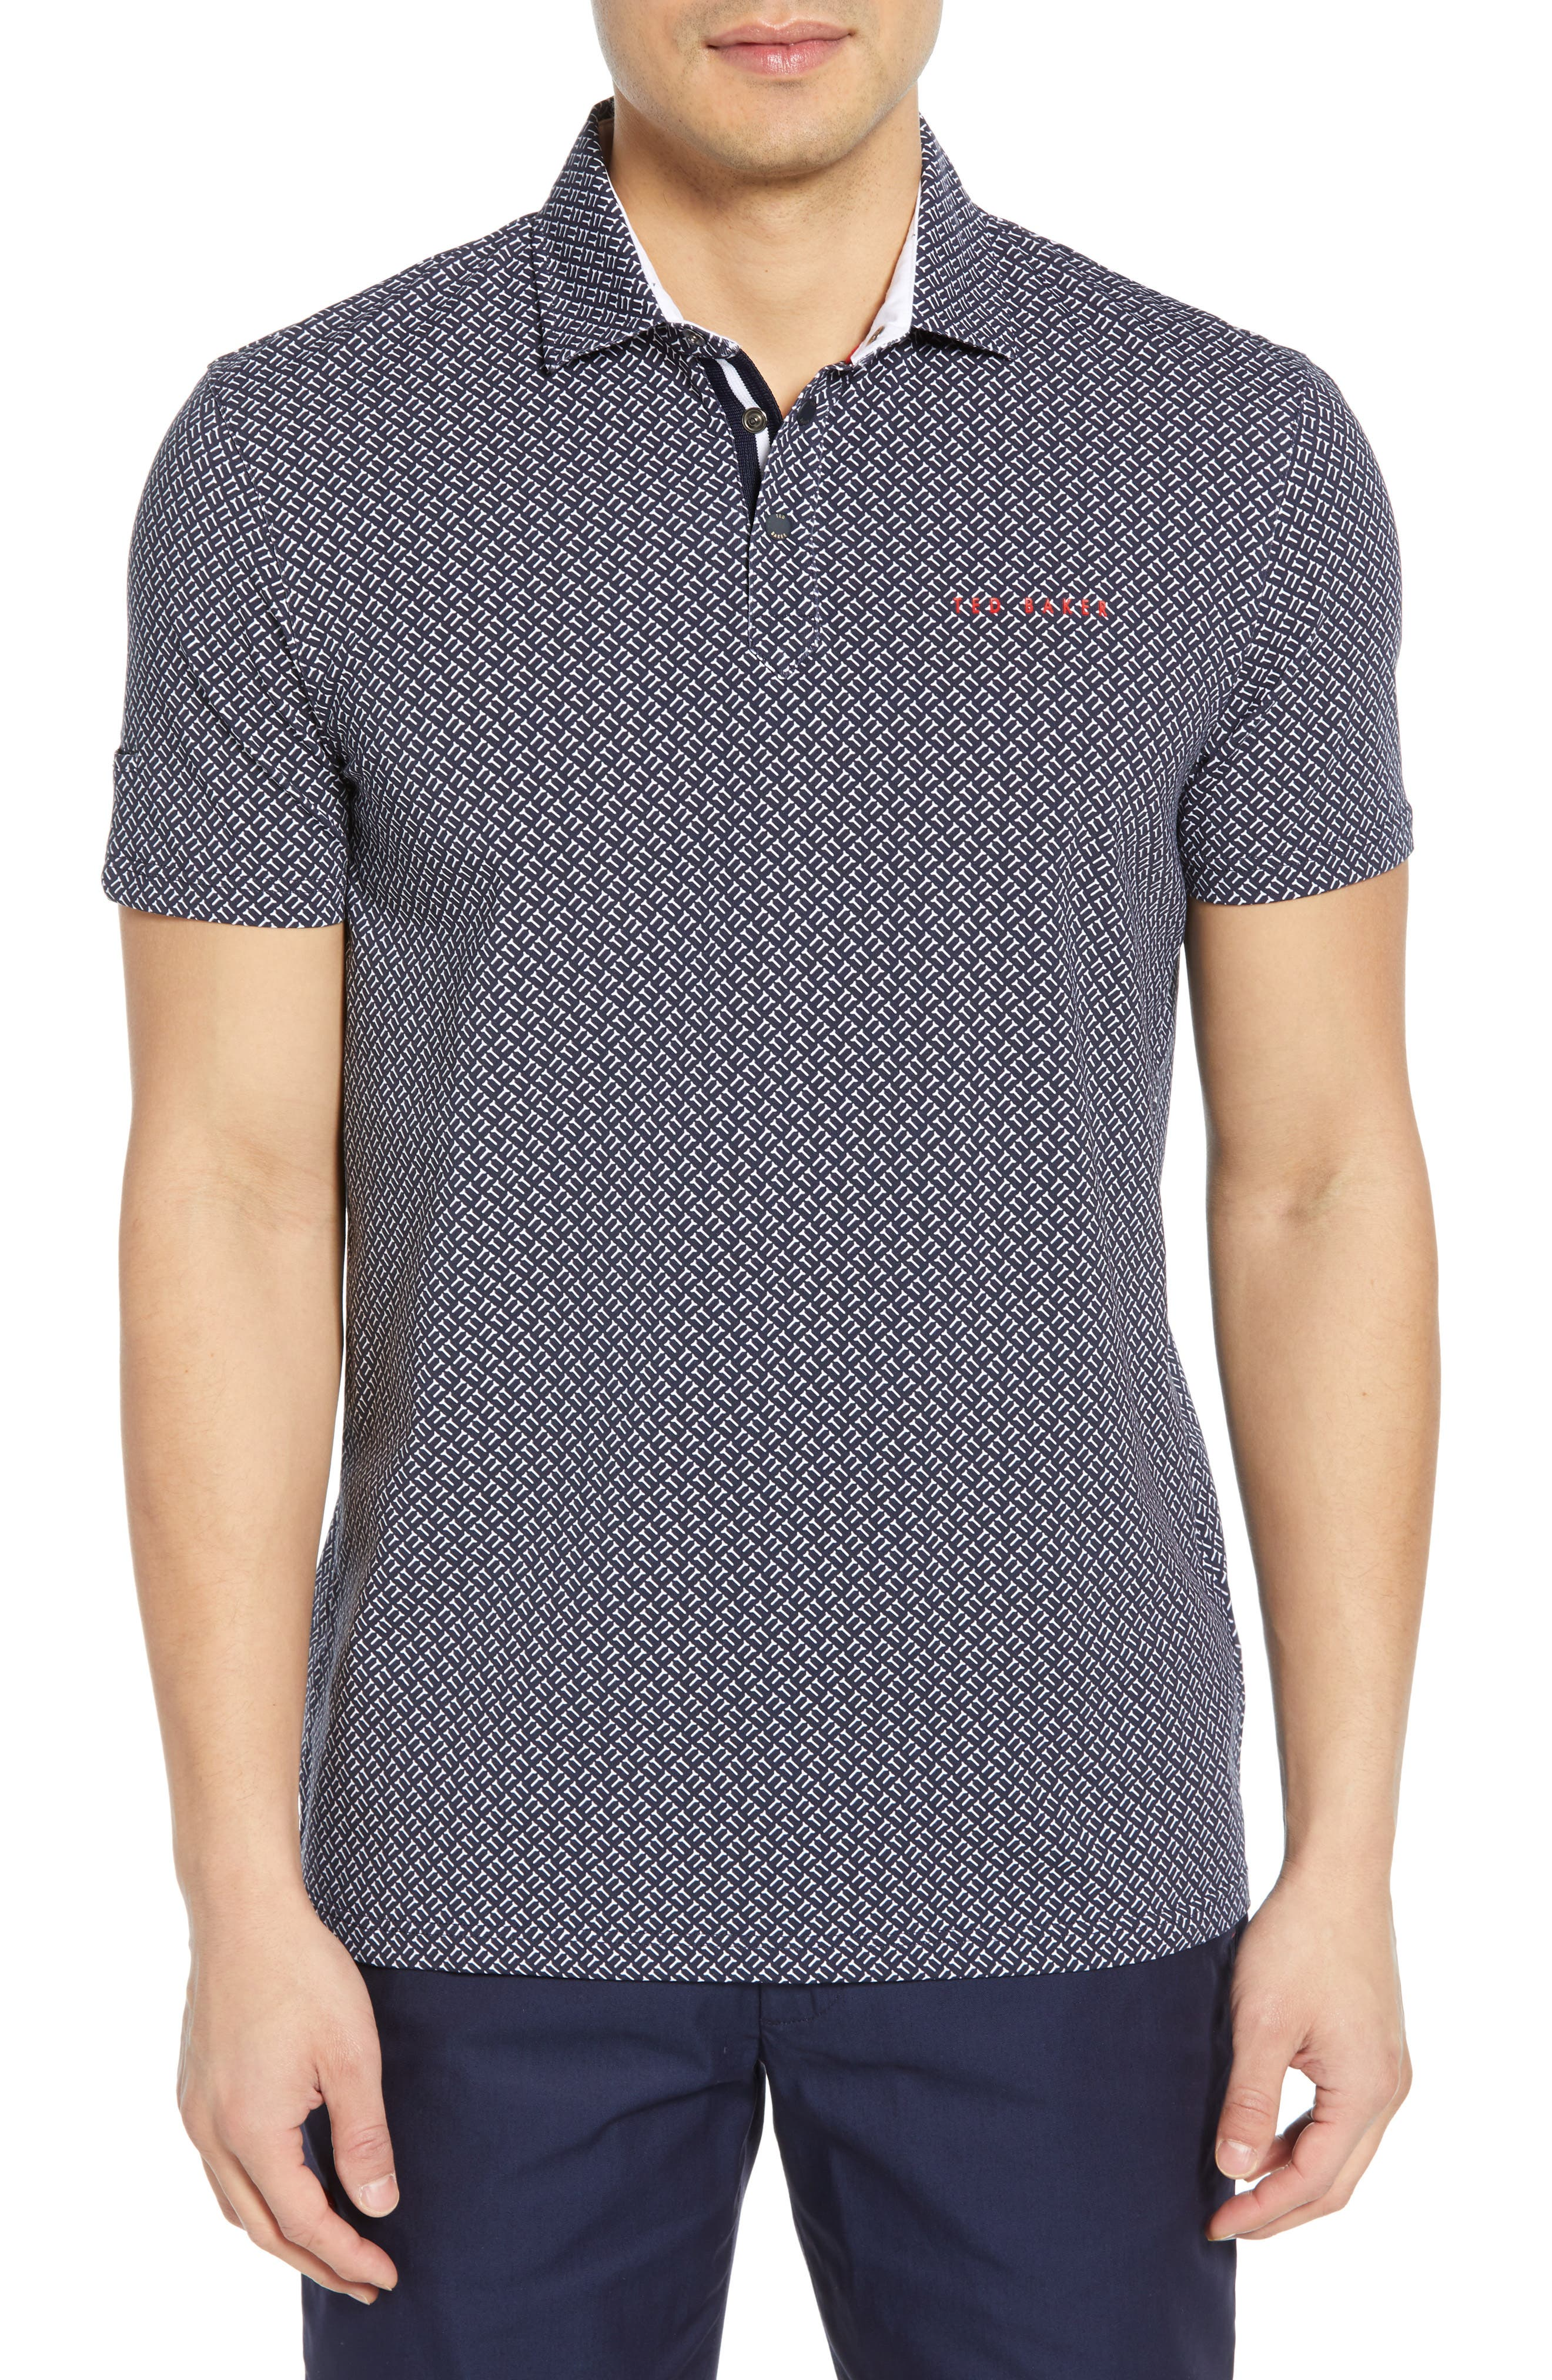 TED BAKER LONDON, Wallnot Slim Fit Golf Polo, Main thumbnail 1, color, NAVY